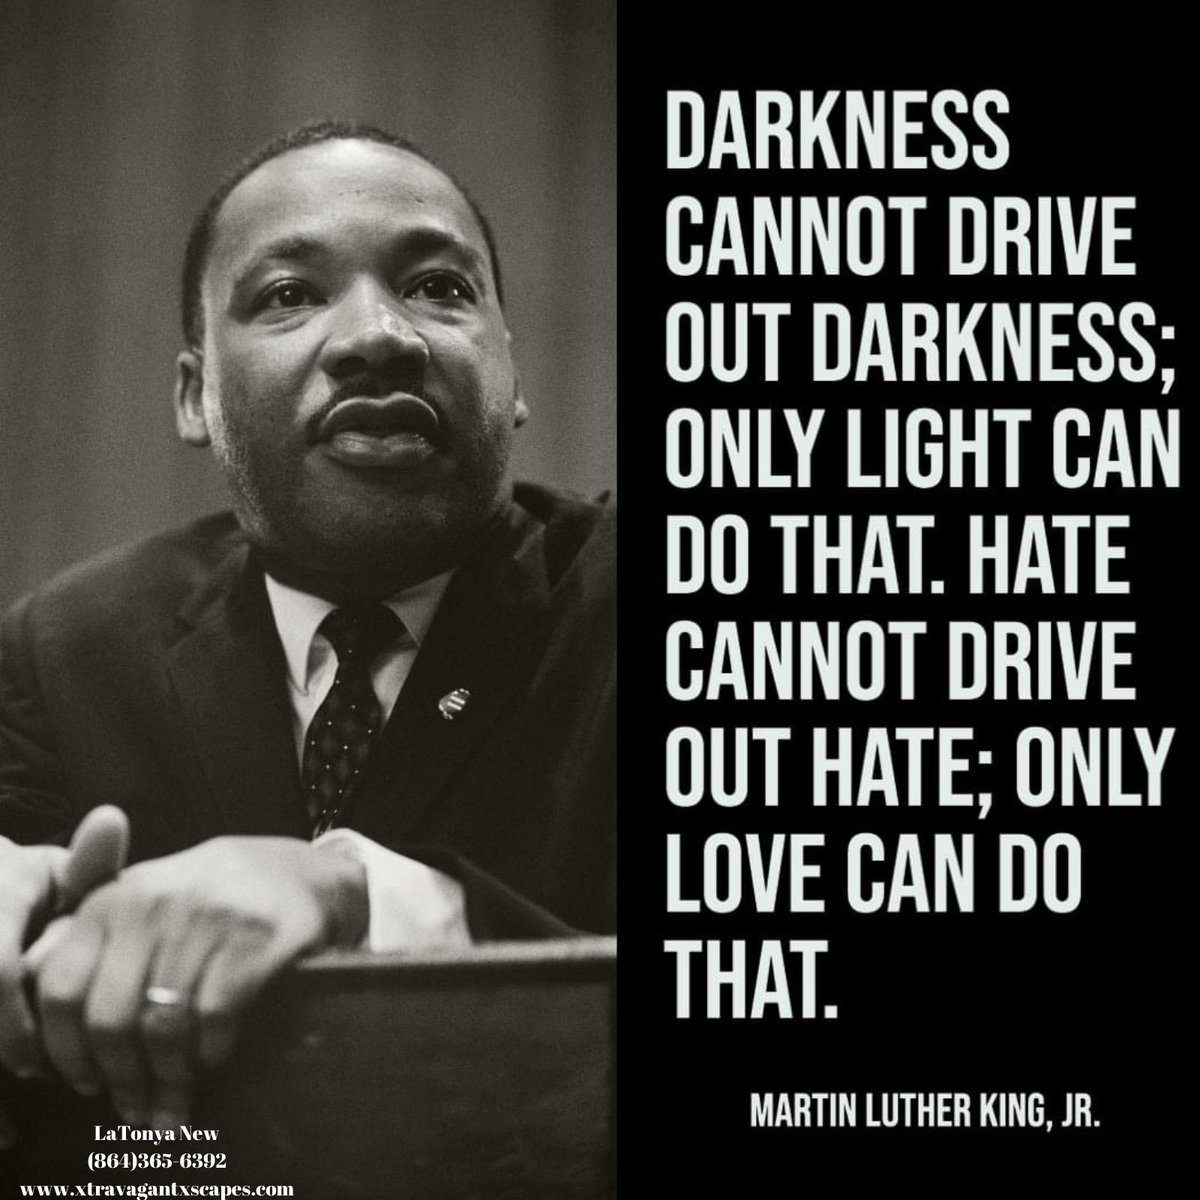 In honor of Dr. Martin Luther King Day!#Legend #MLKDay2021 #KingandPrince #MartinLutherKingJr #RIP #ICON #MLK #NeverForget #HERO